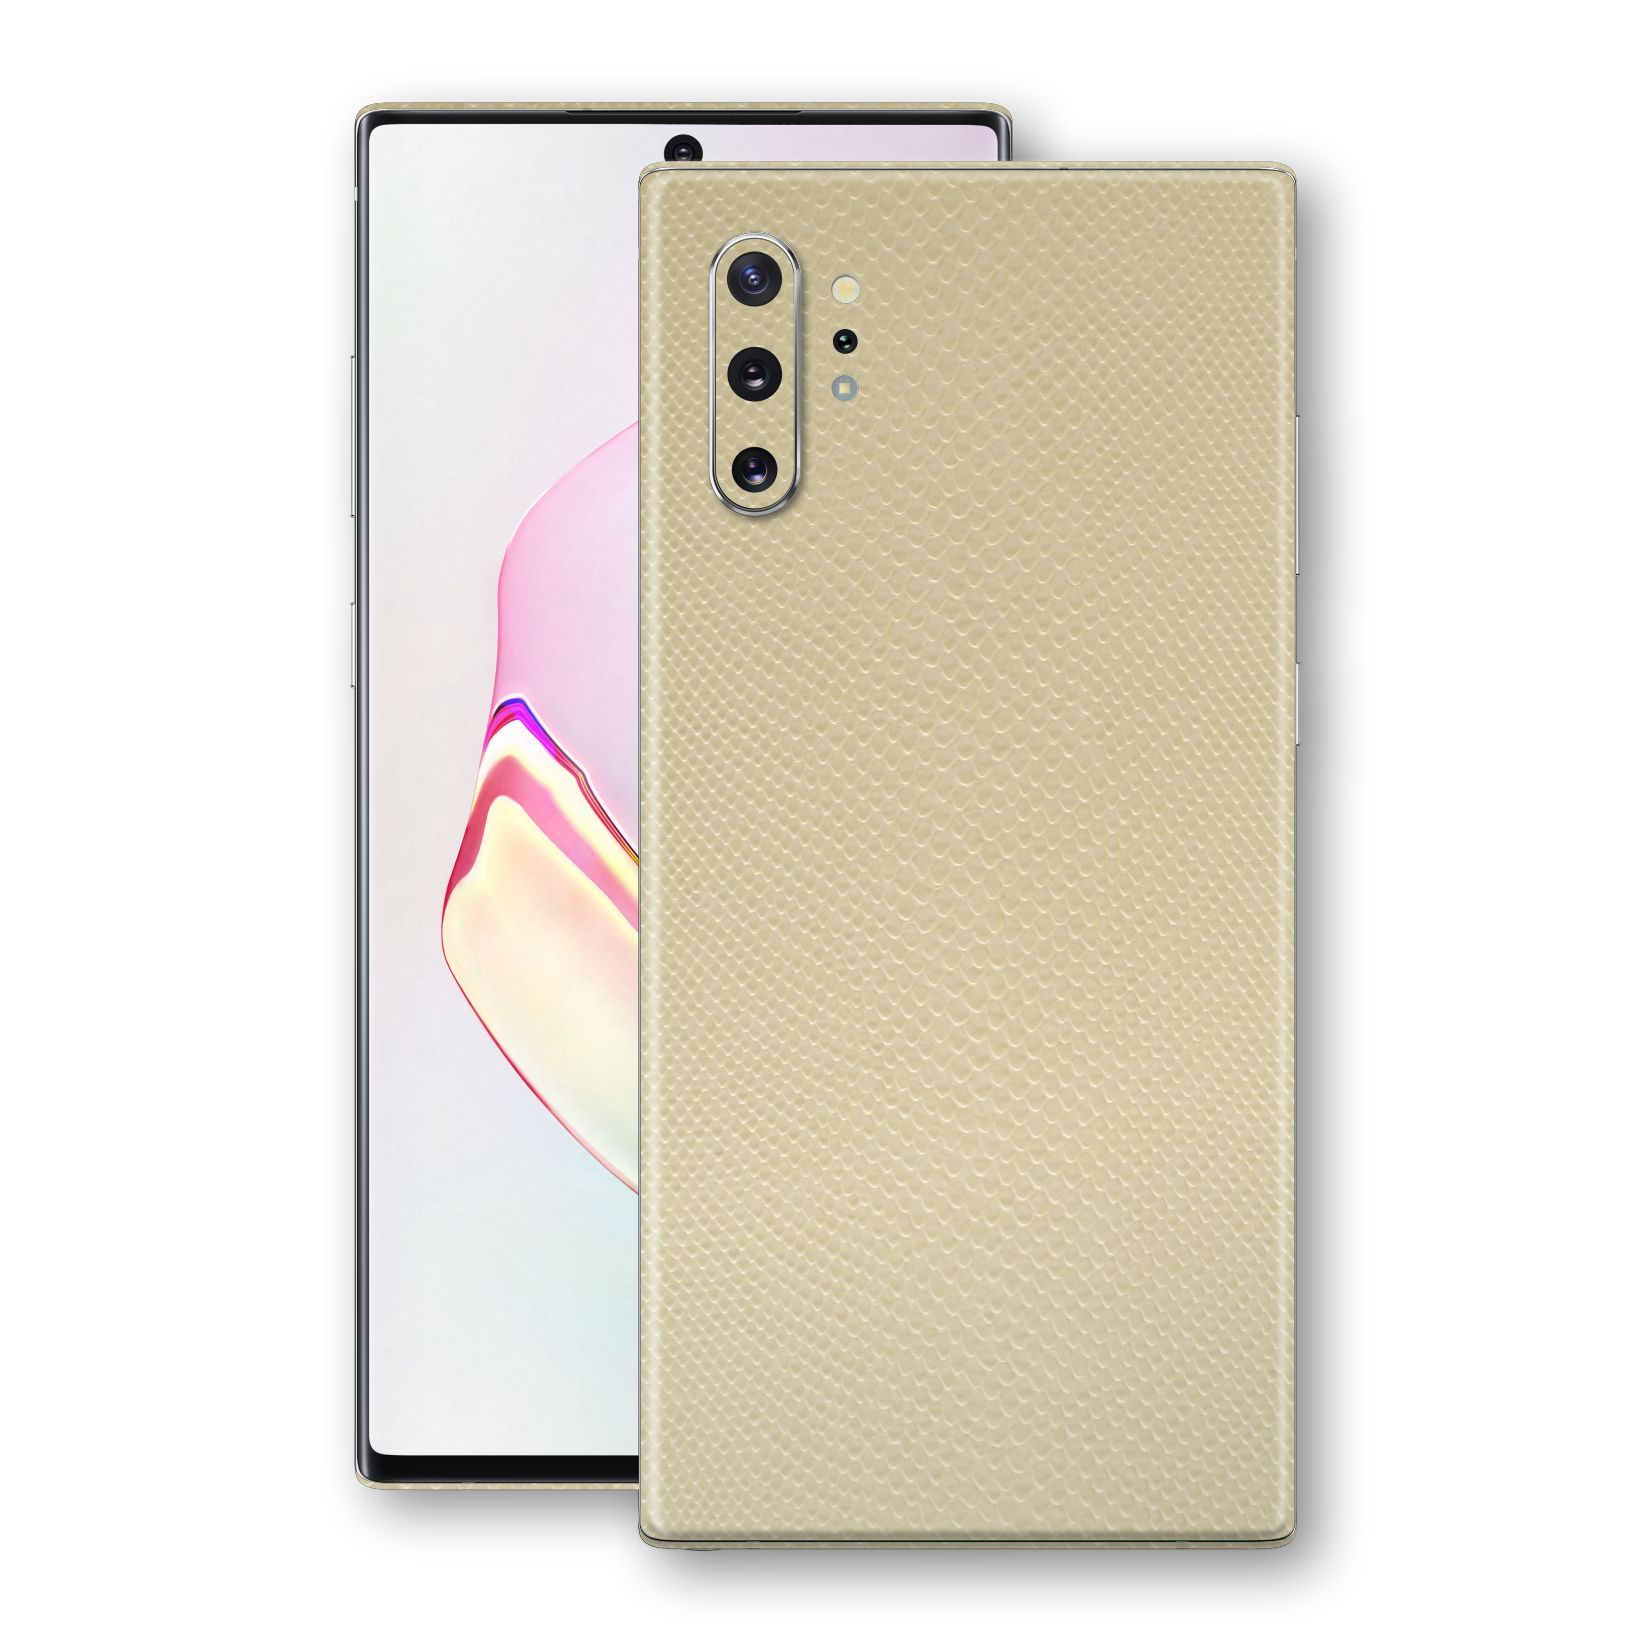 note 5 deleting photo and document